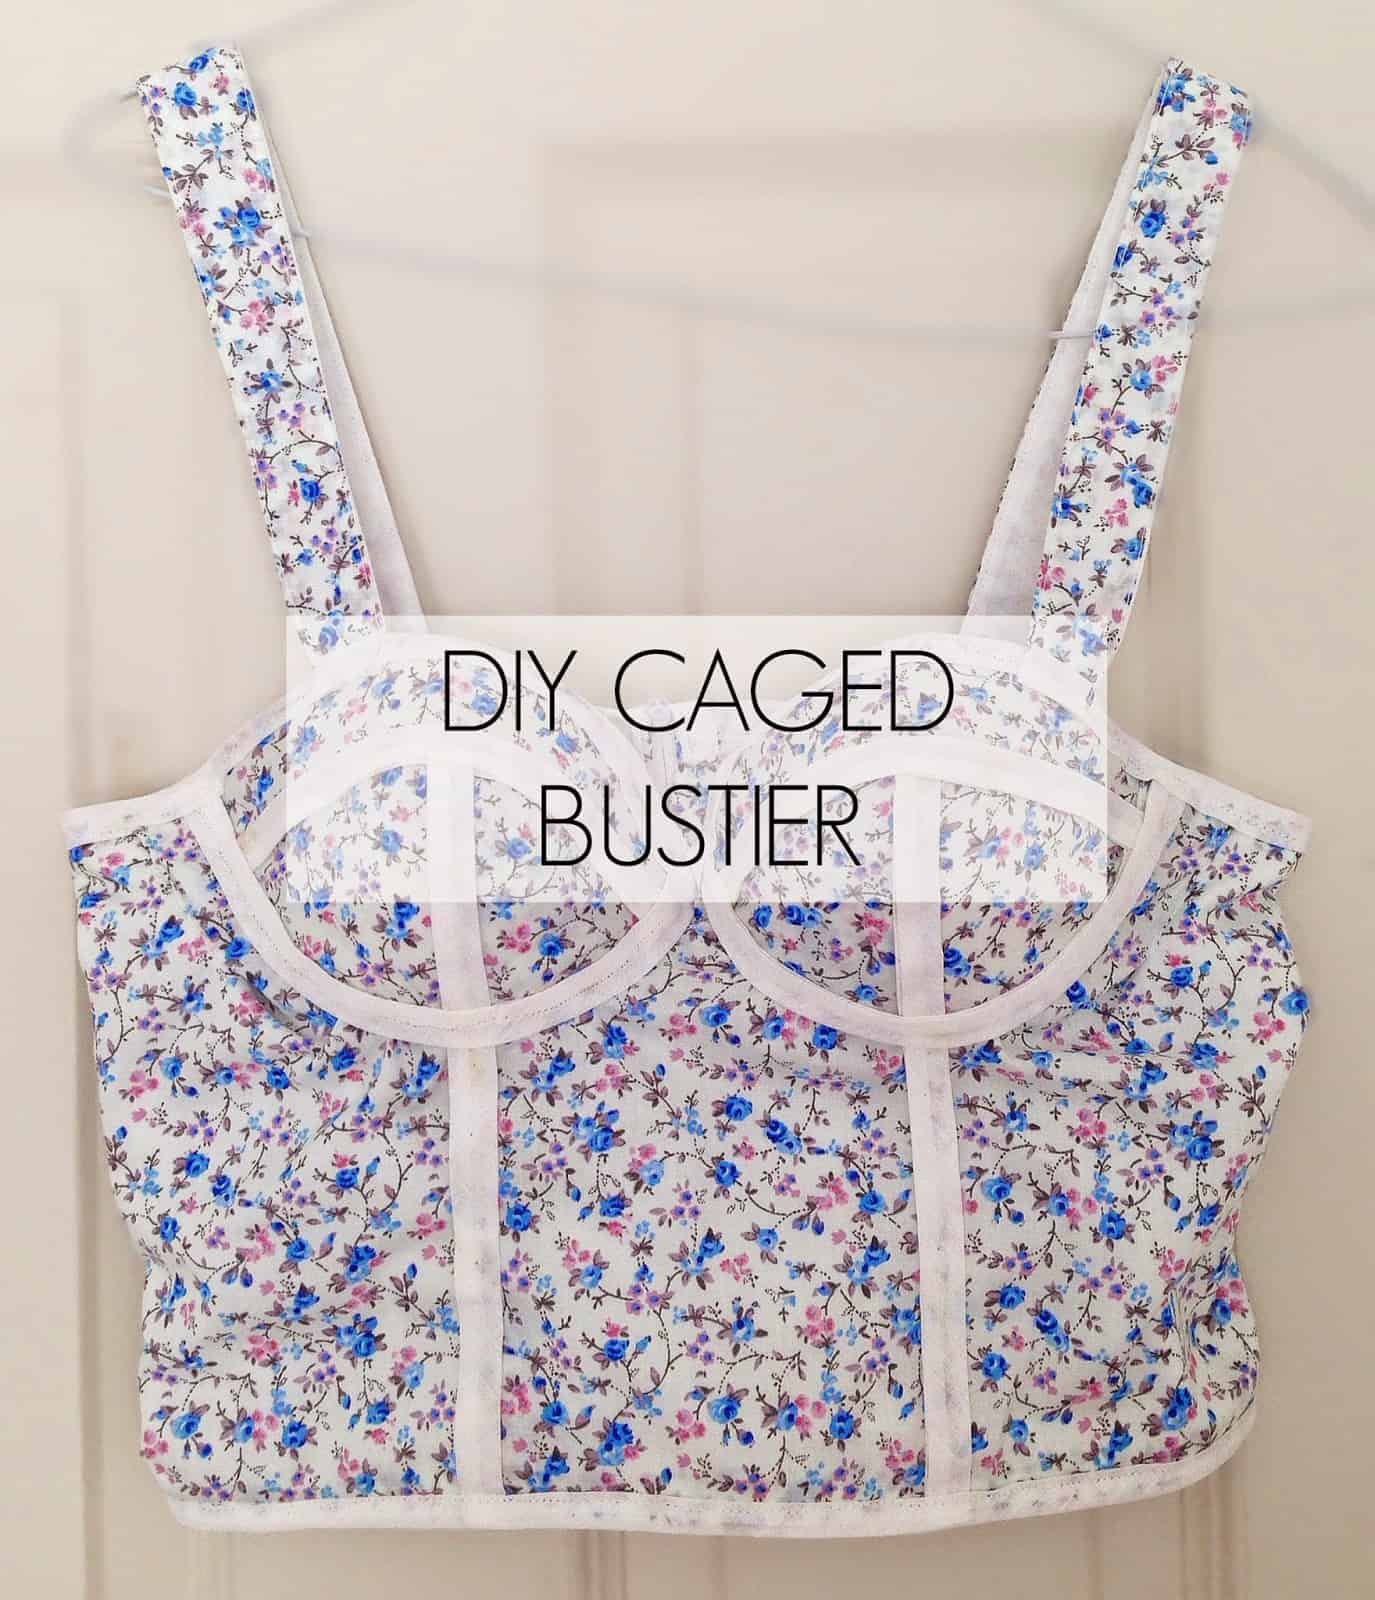 Diy floral caged bustier